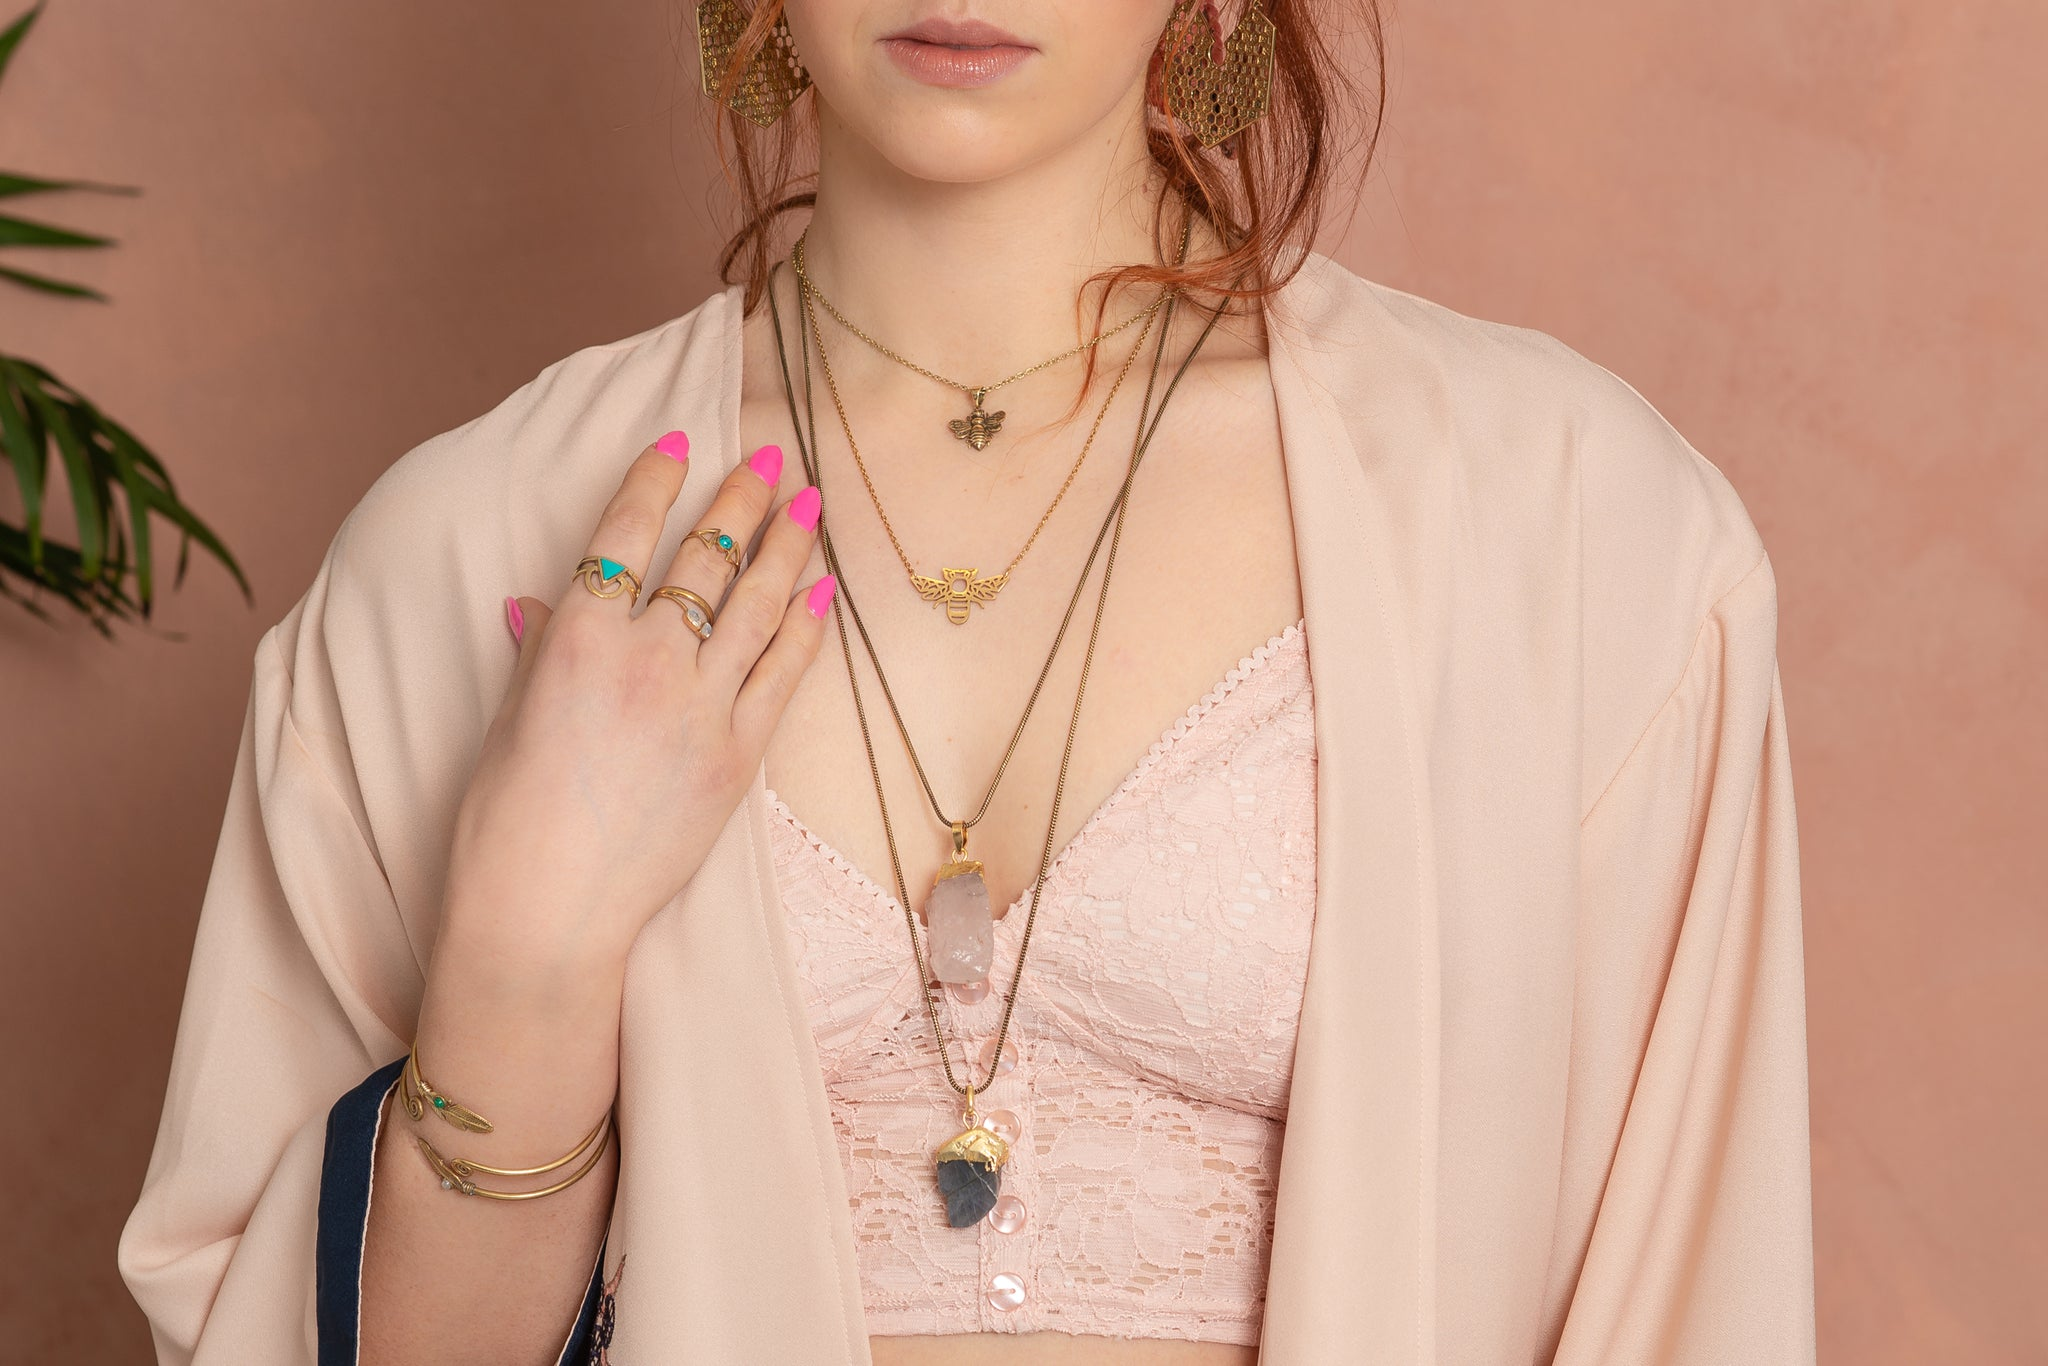 layered necklaces, stacking necklaces, boho necklace, crystal necklace, bee necklace, gold necklace, pink kimono